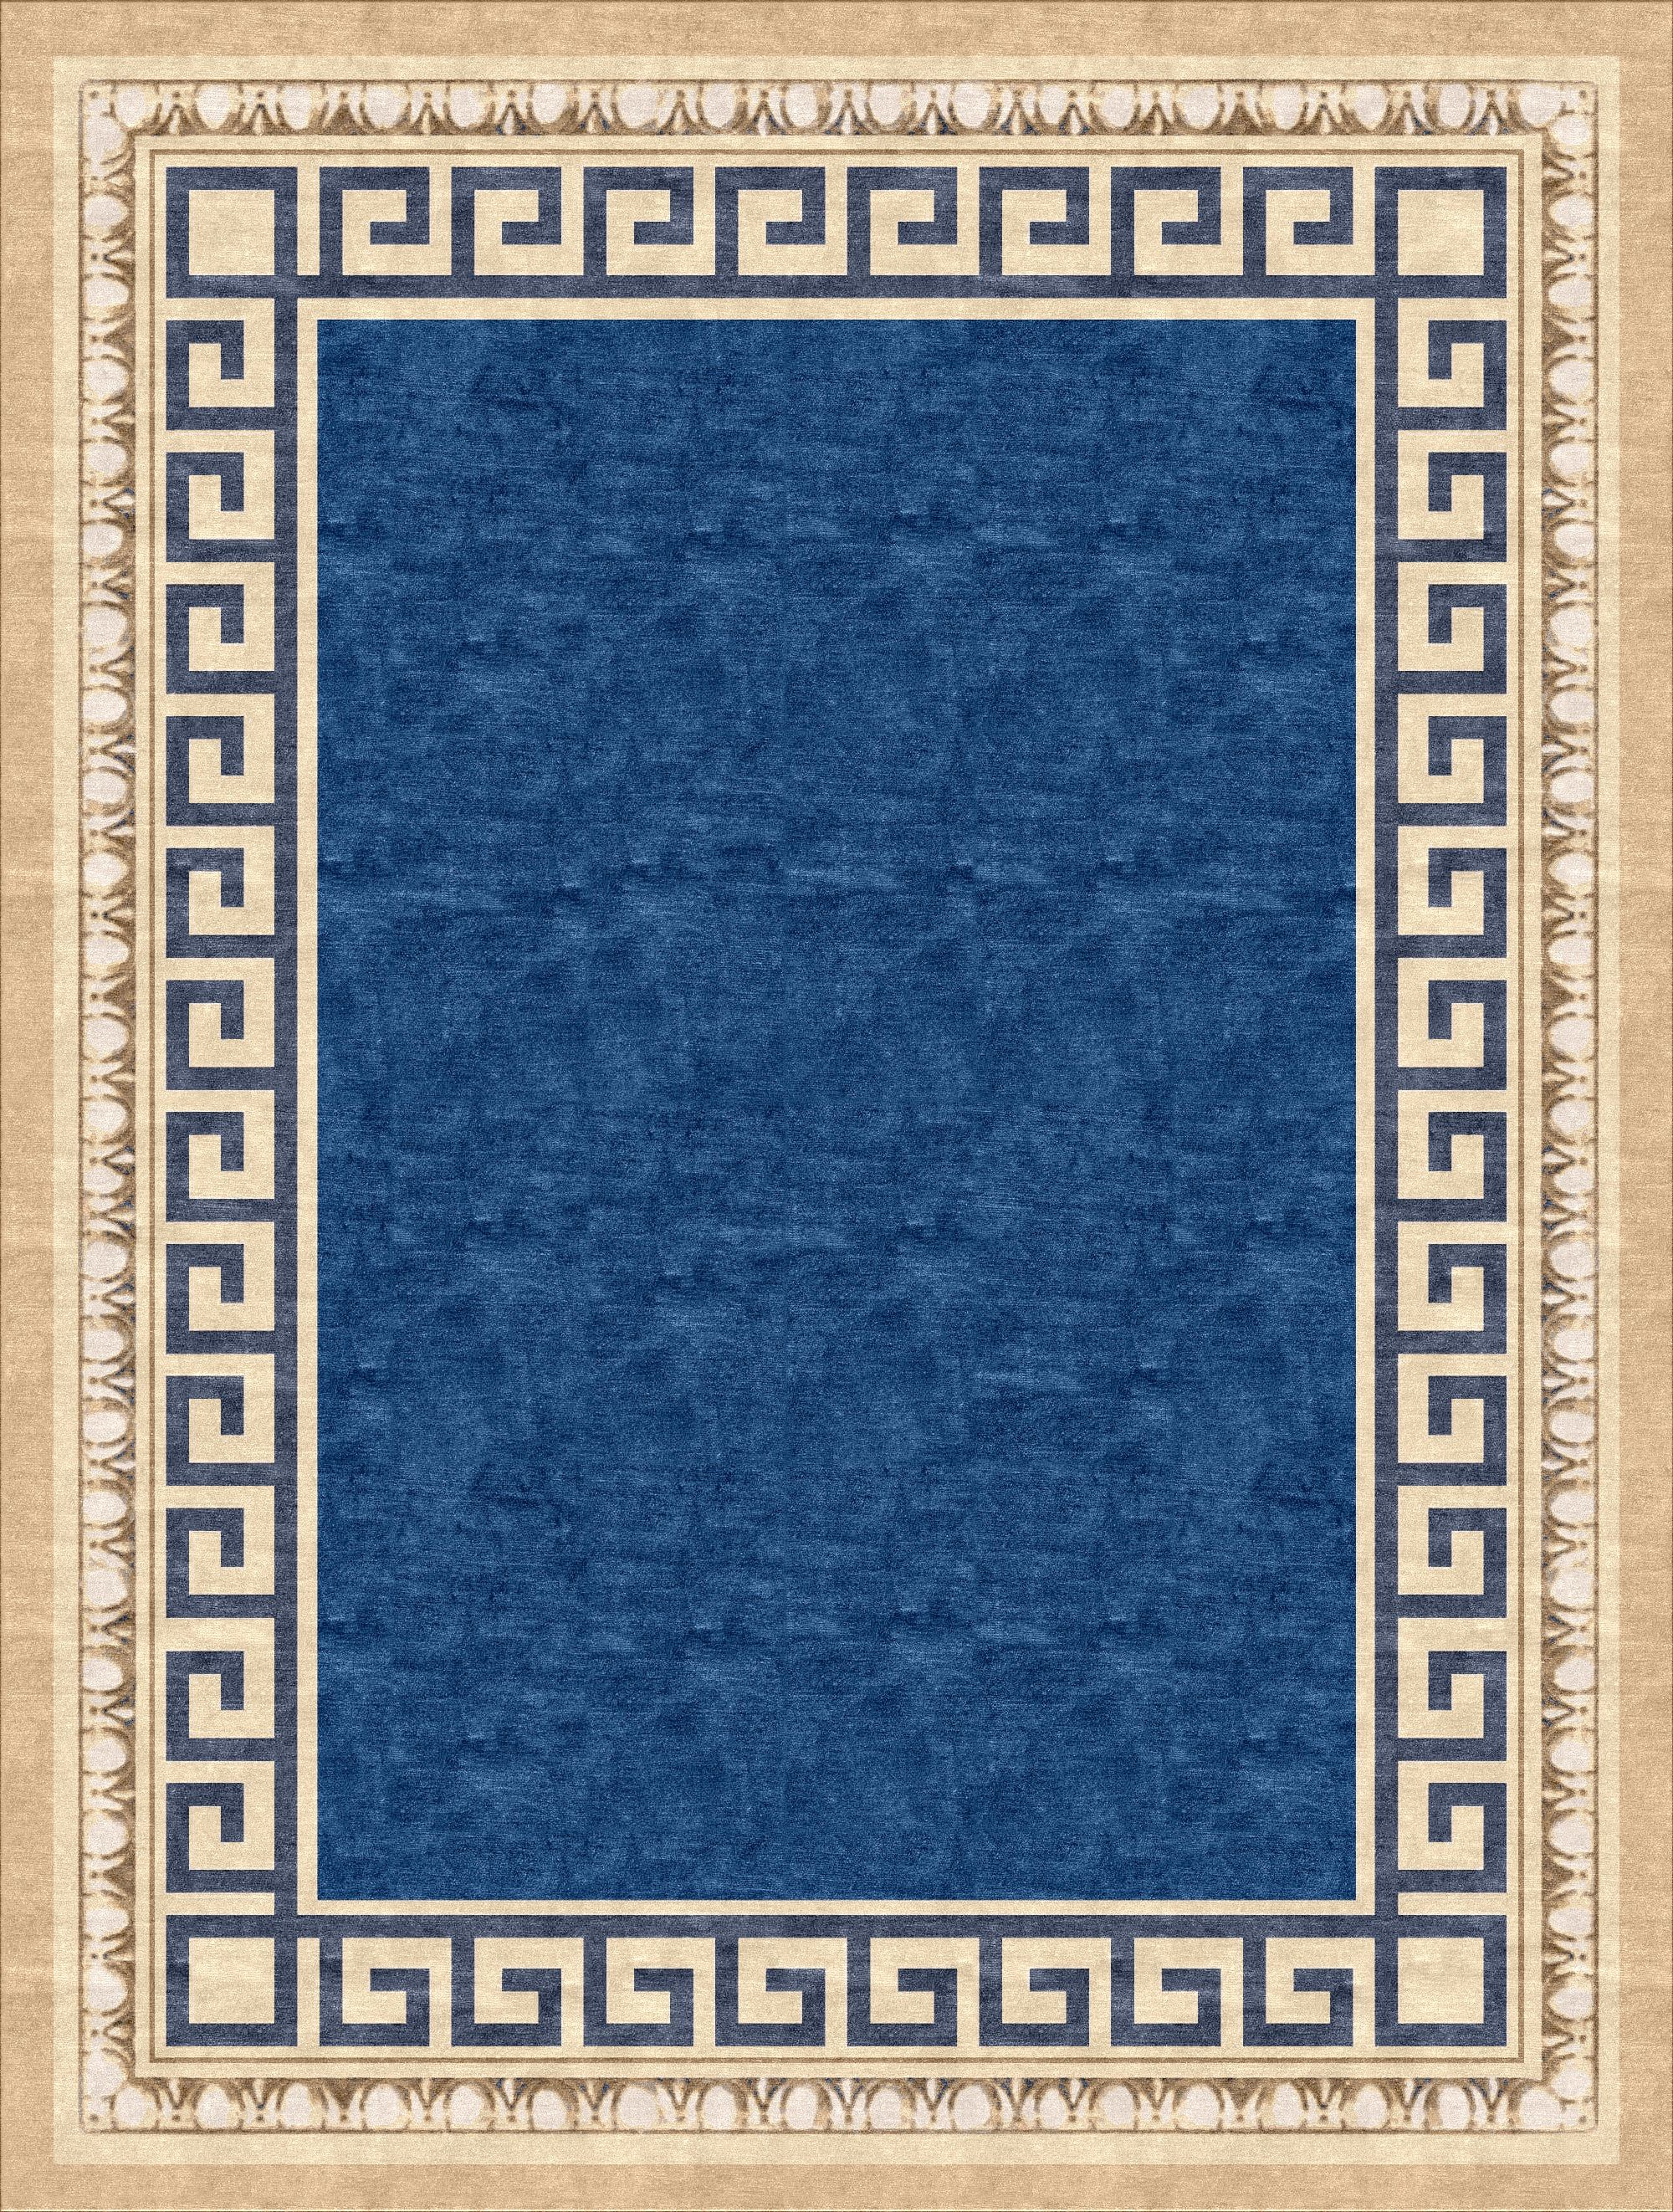 Handtufted Rug Based On A Hand Painted Wall In The Capital